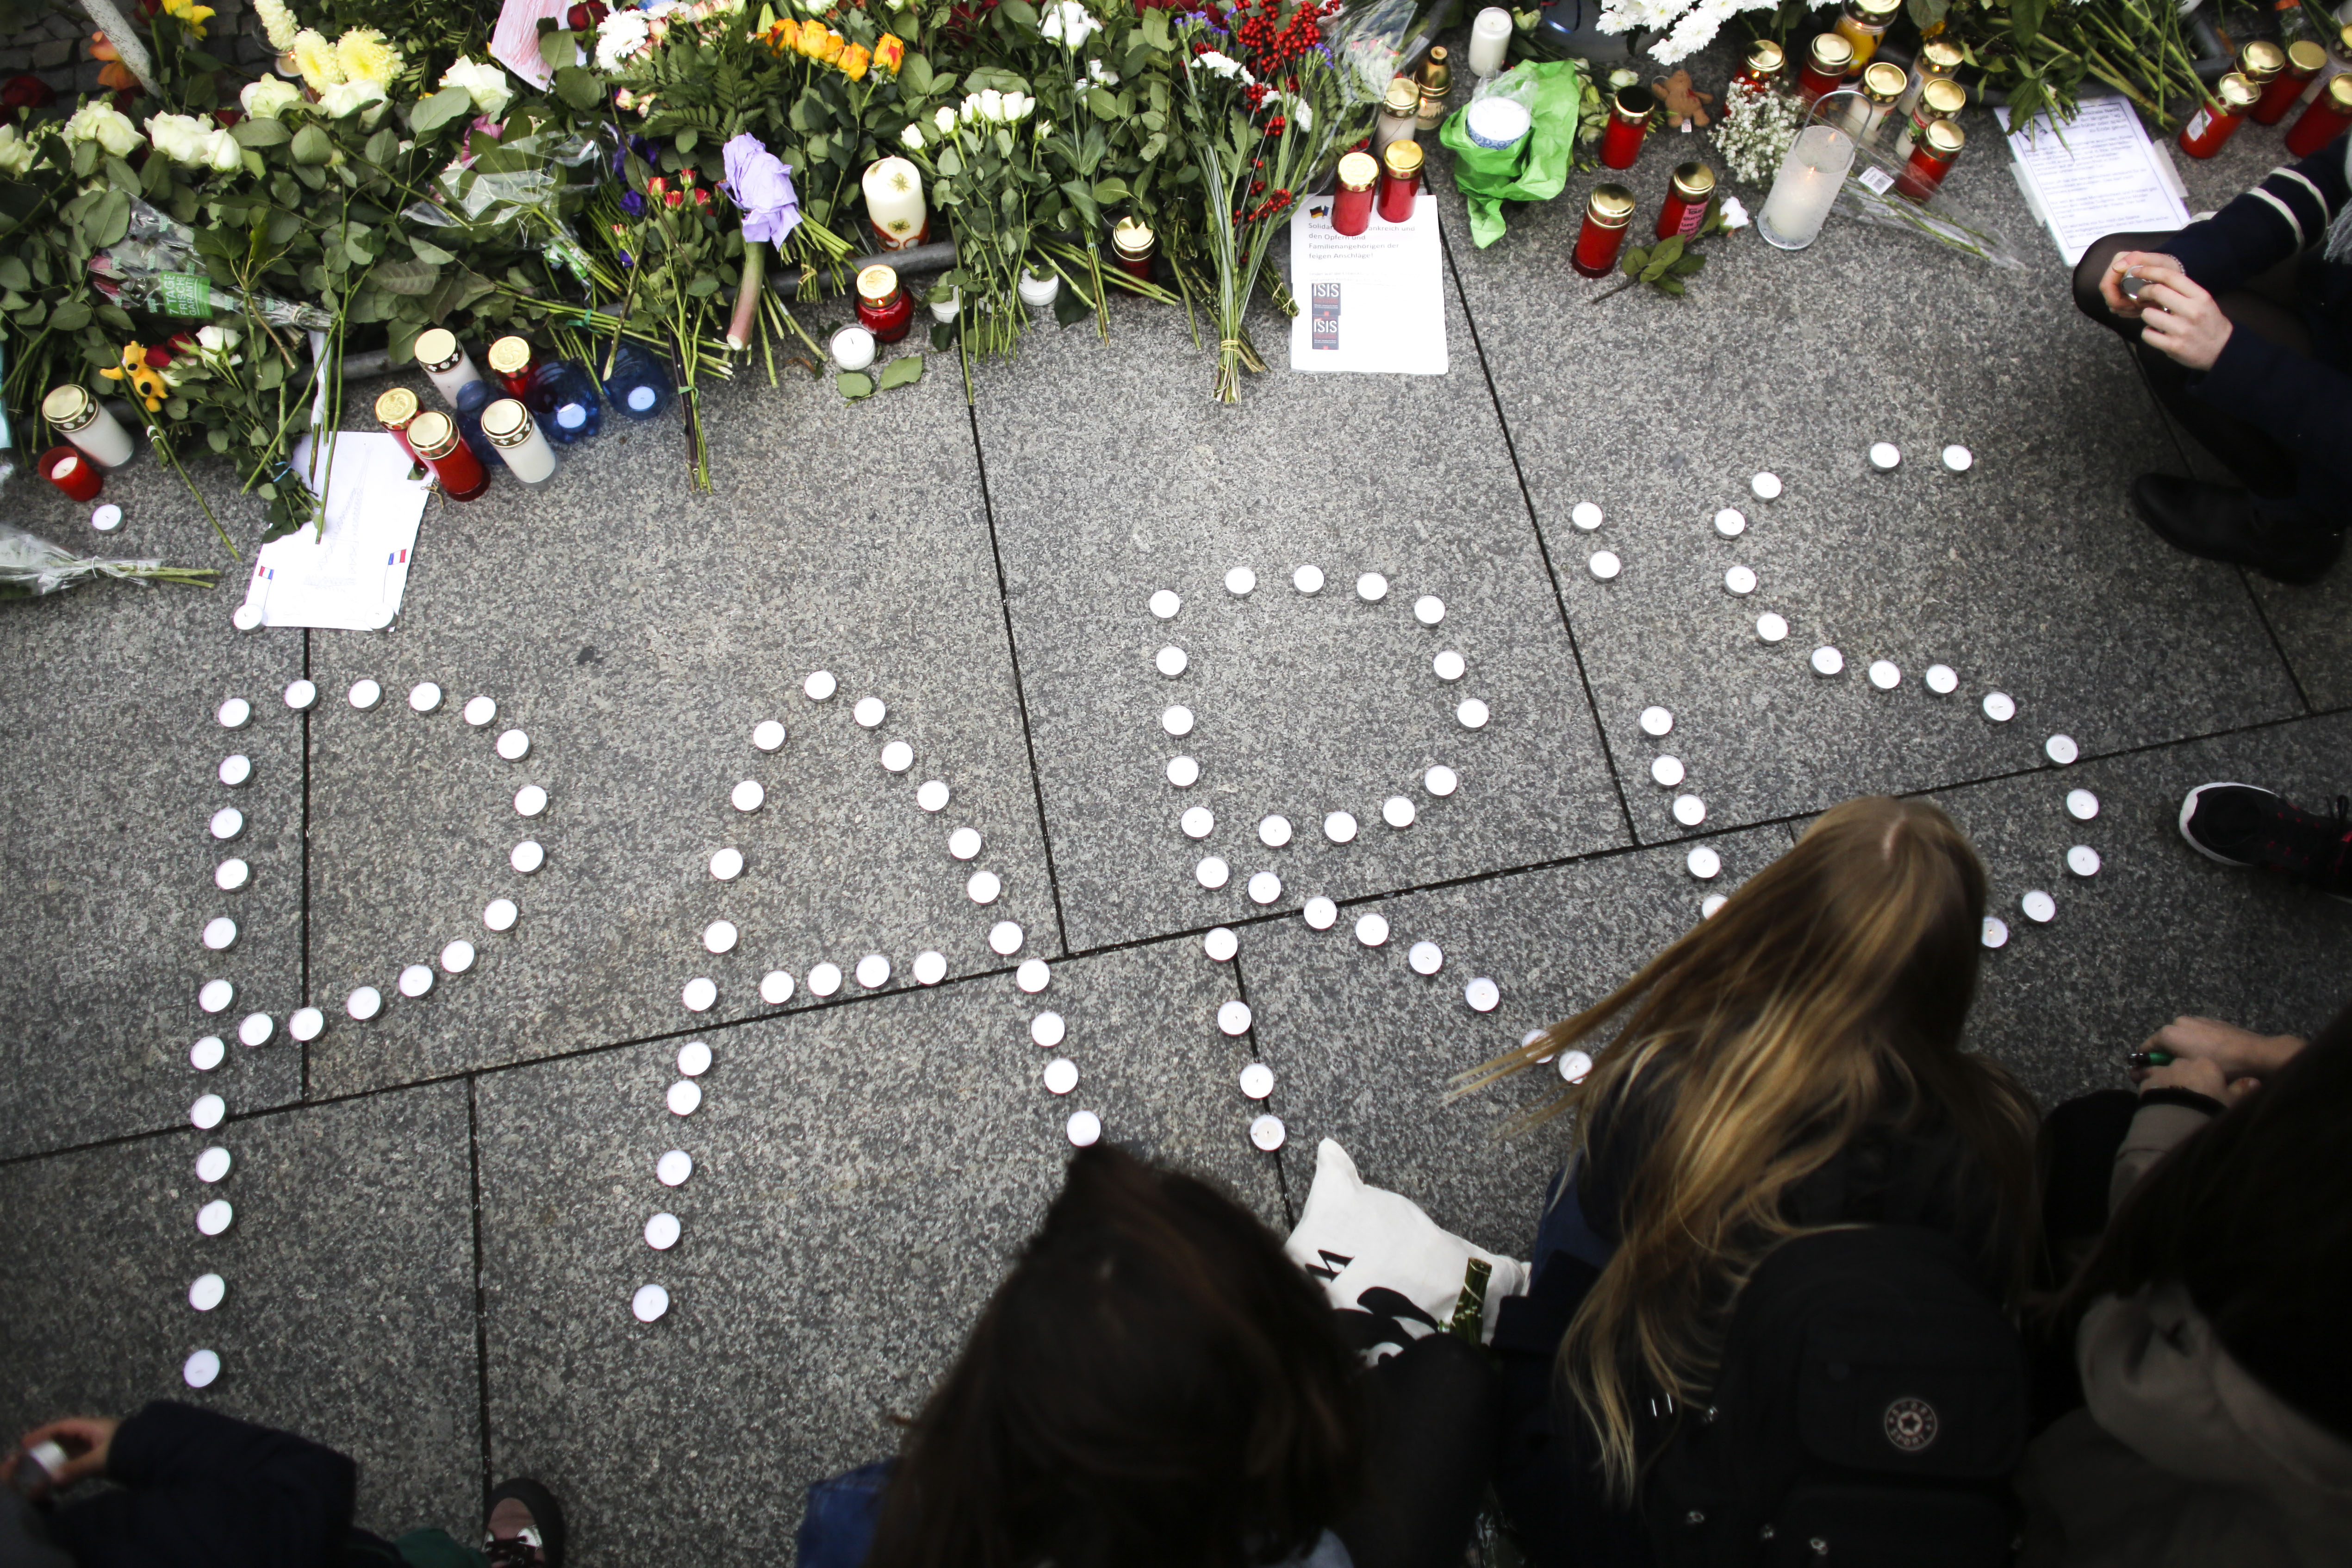 The 10 Best and Worst Responses to the Paris Attacks